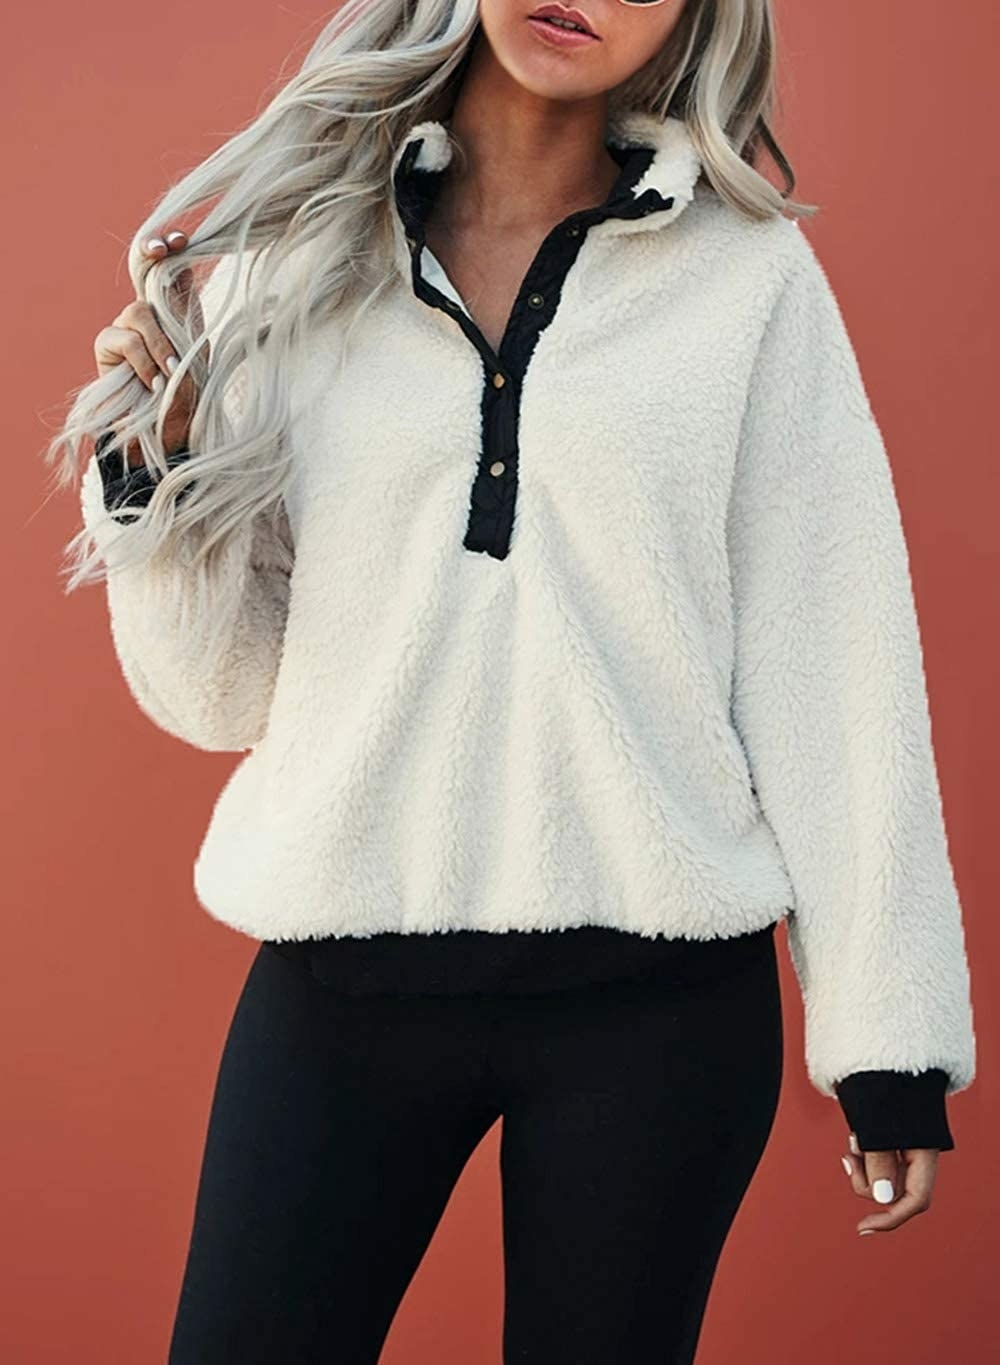 Model in the white pullover with black accents